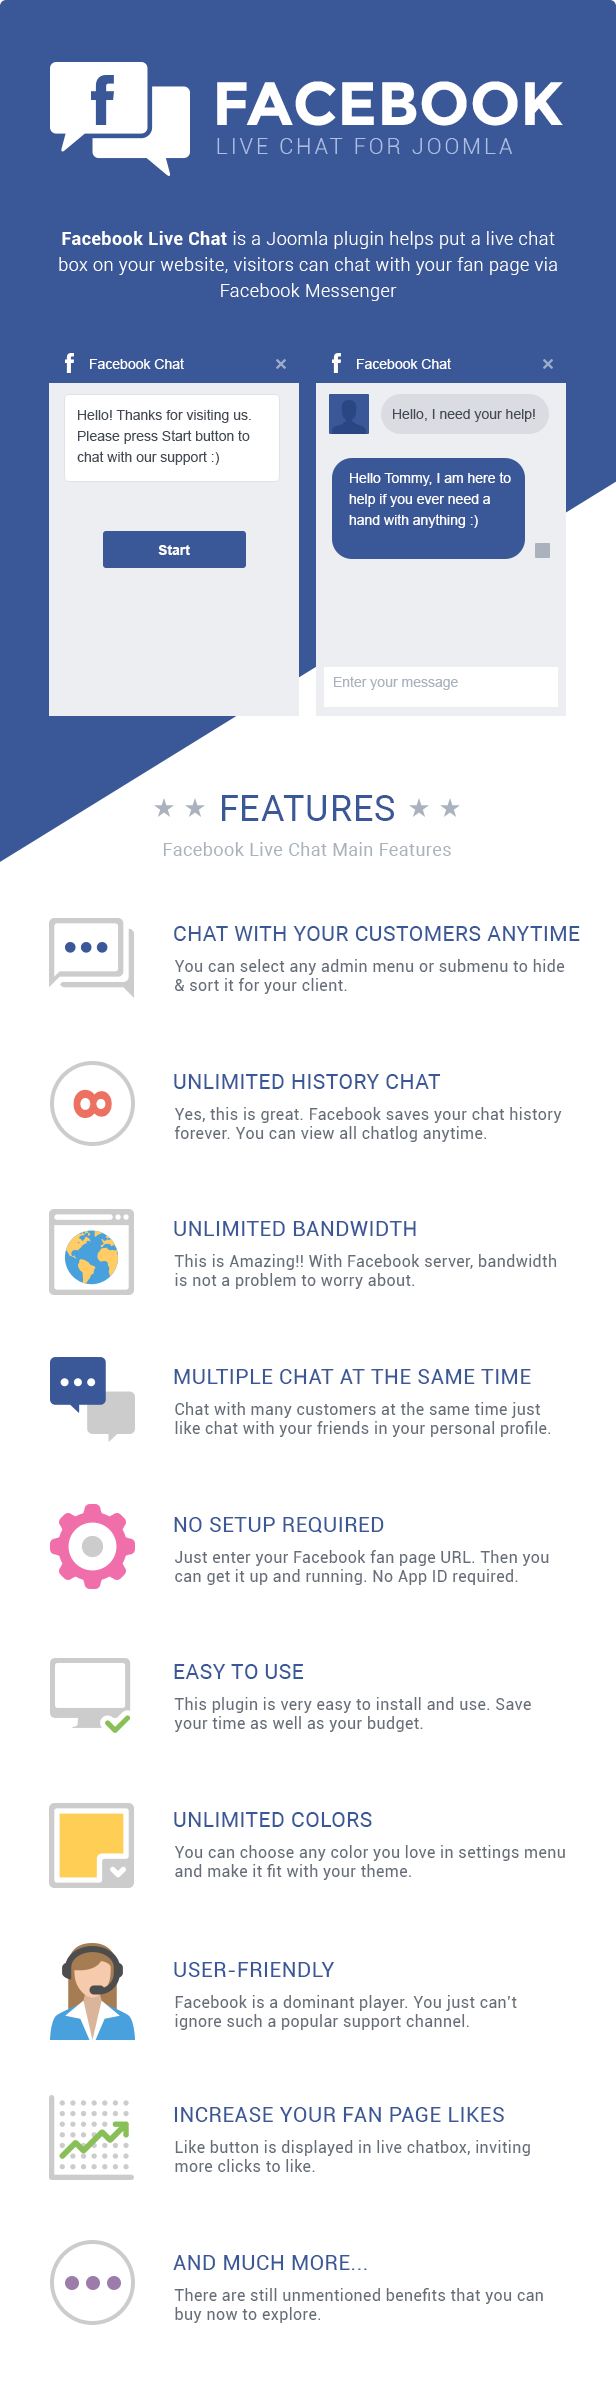 Facebook Live Chat Features